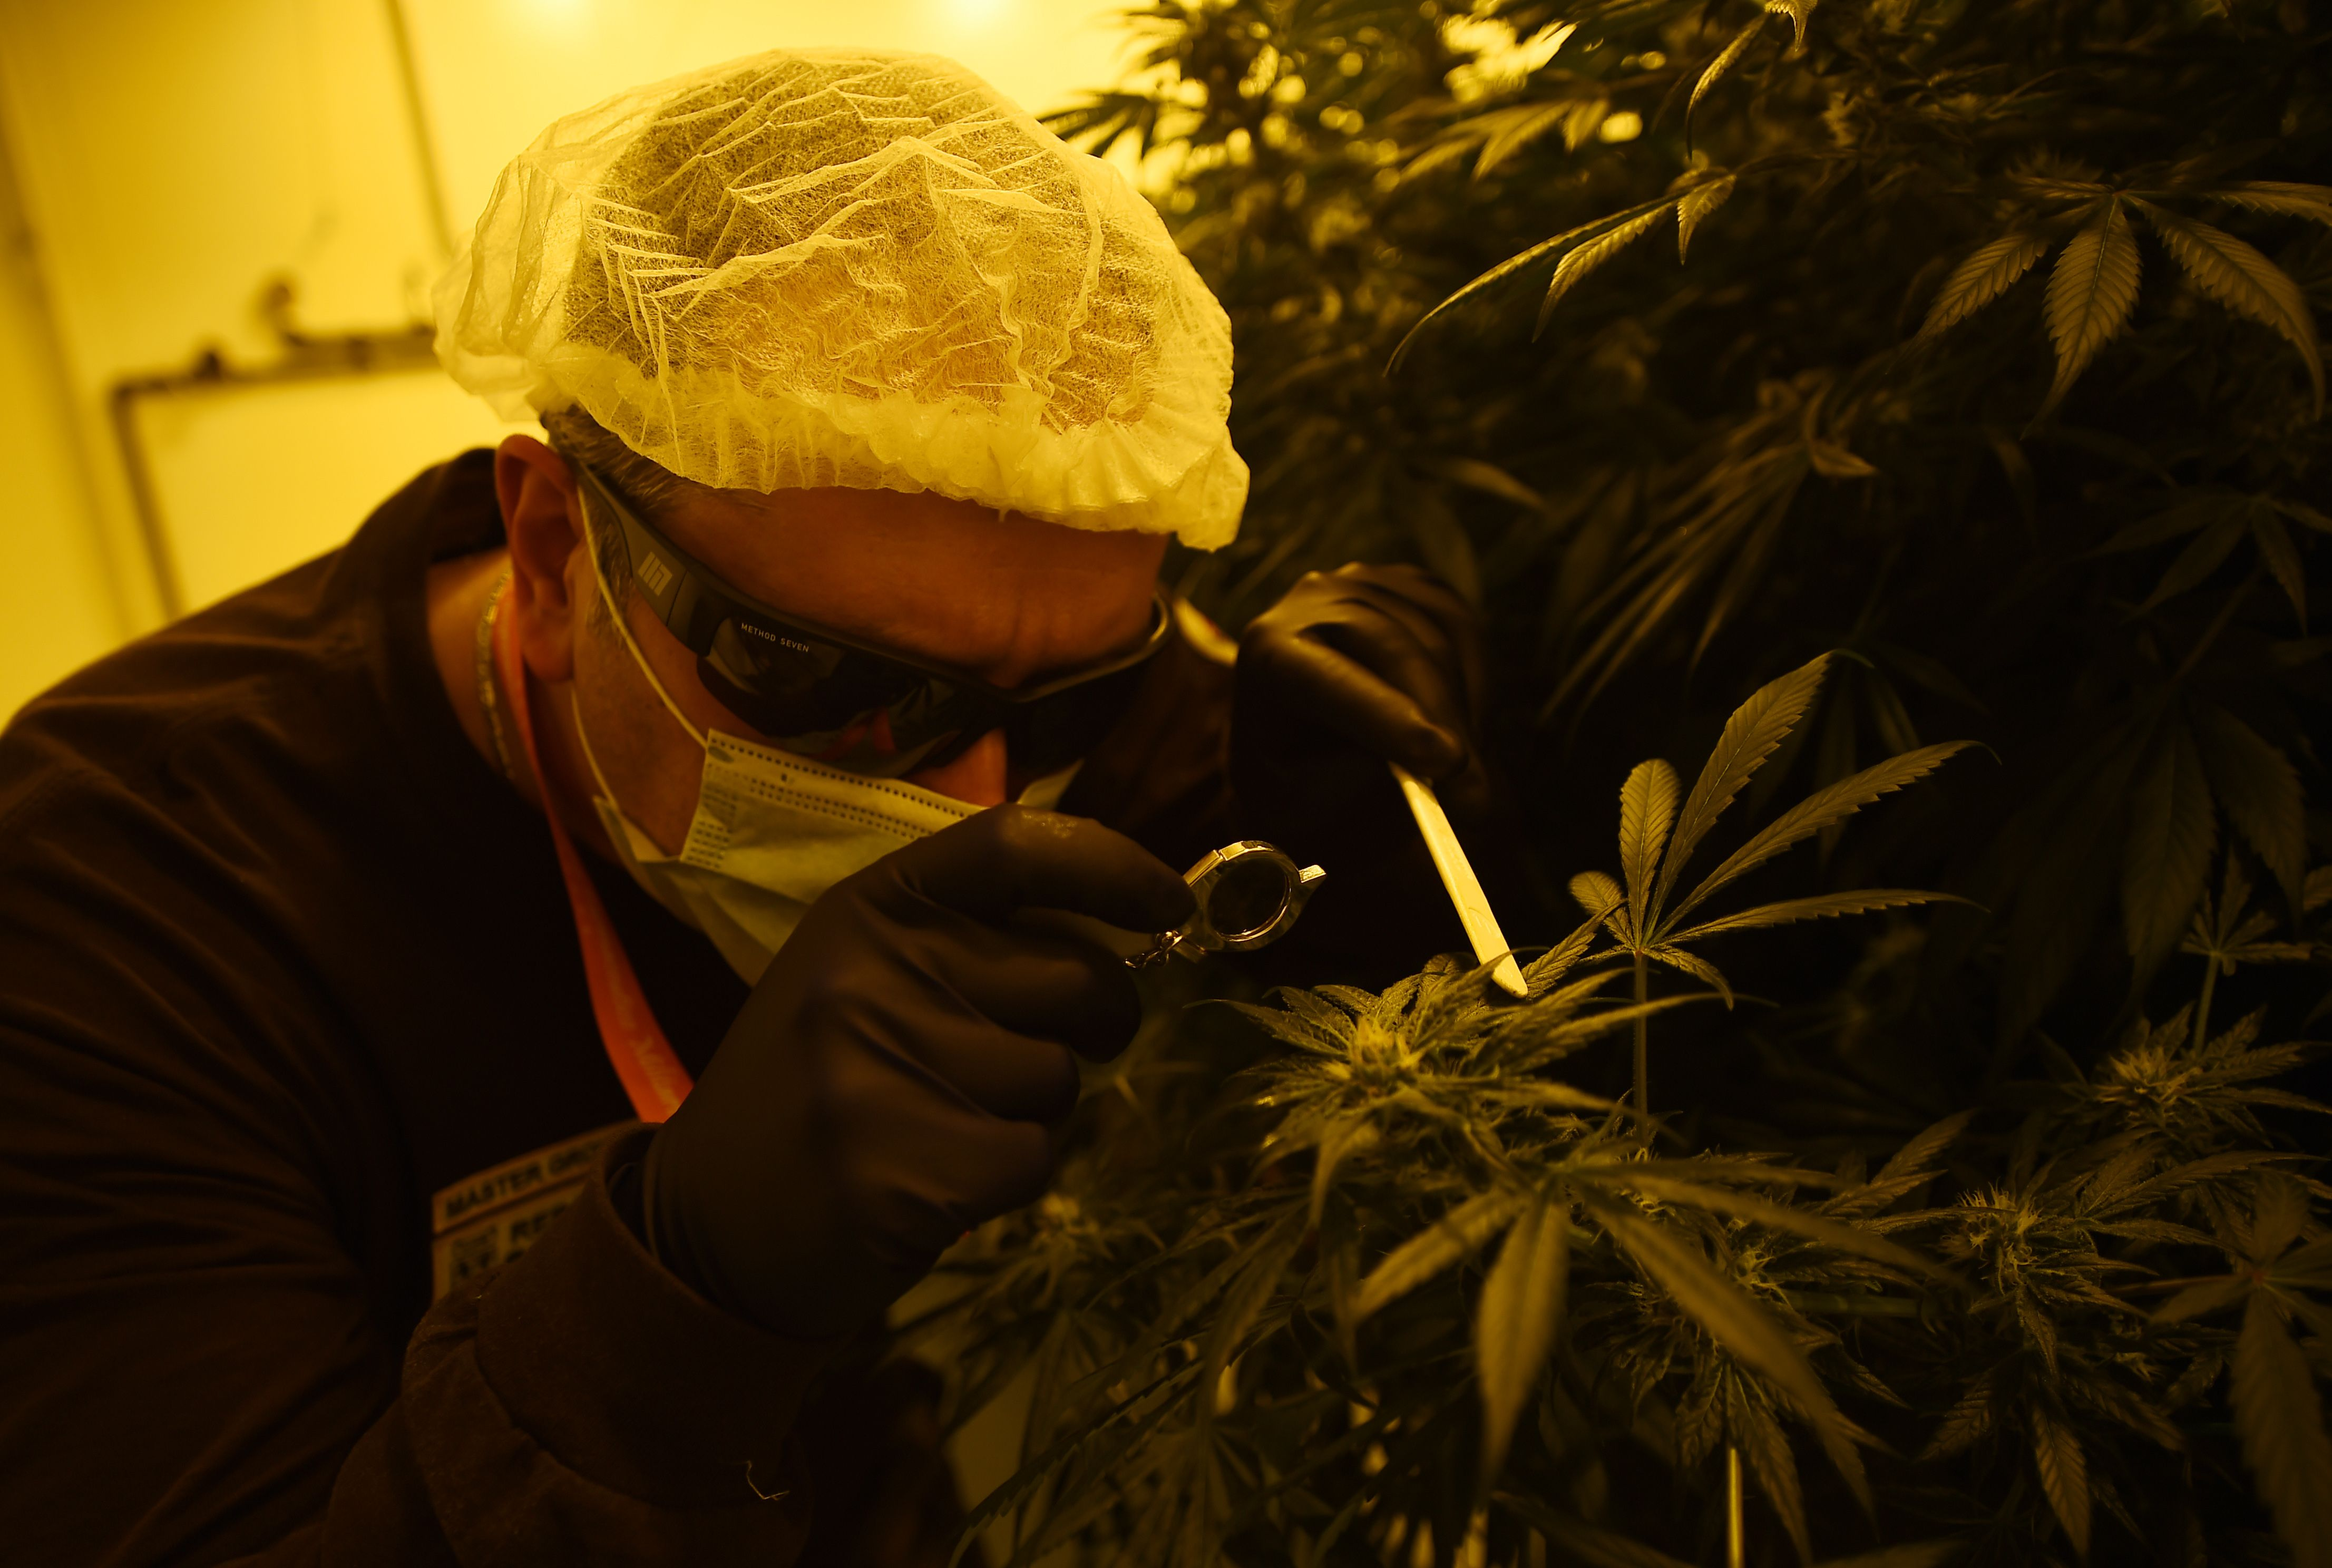 A researcher in a marijuana growing room inspects plant buds